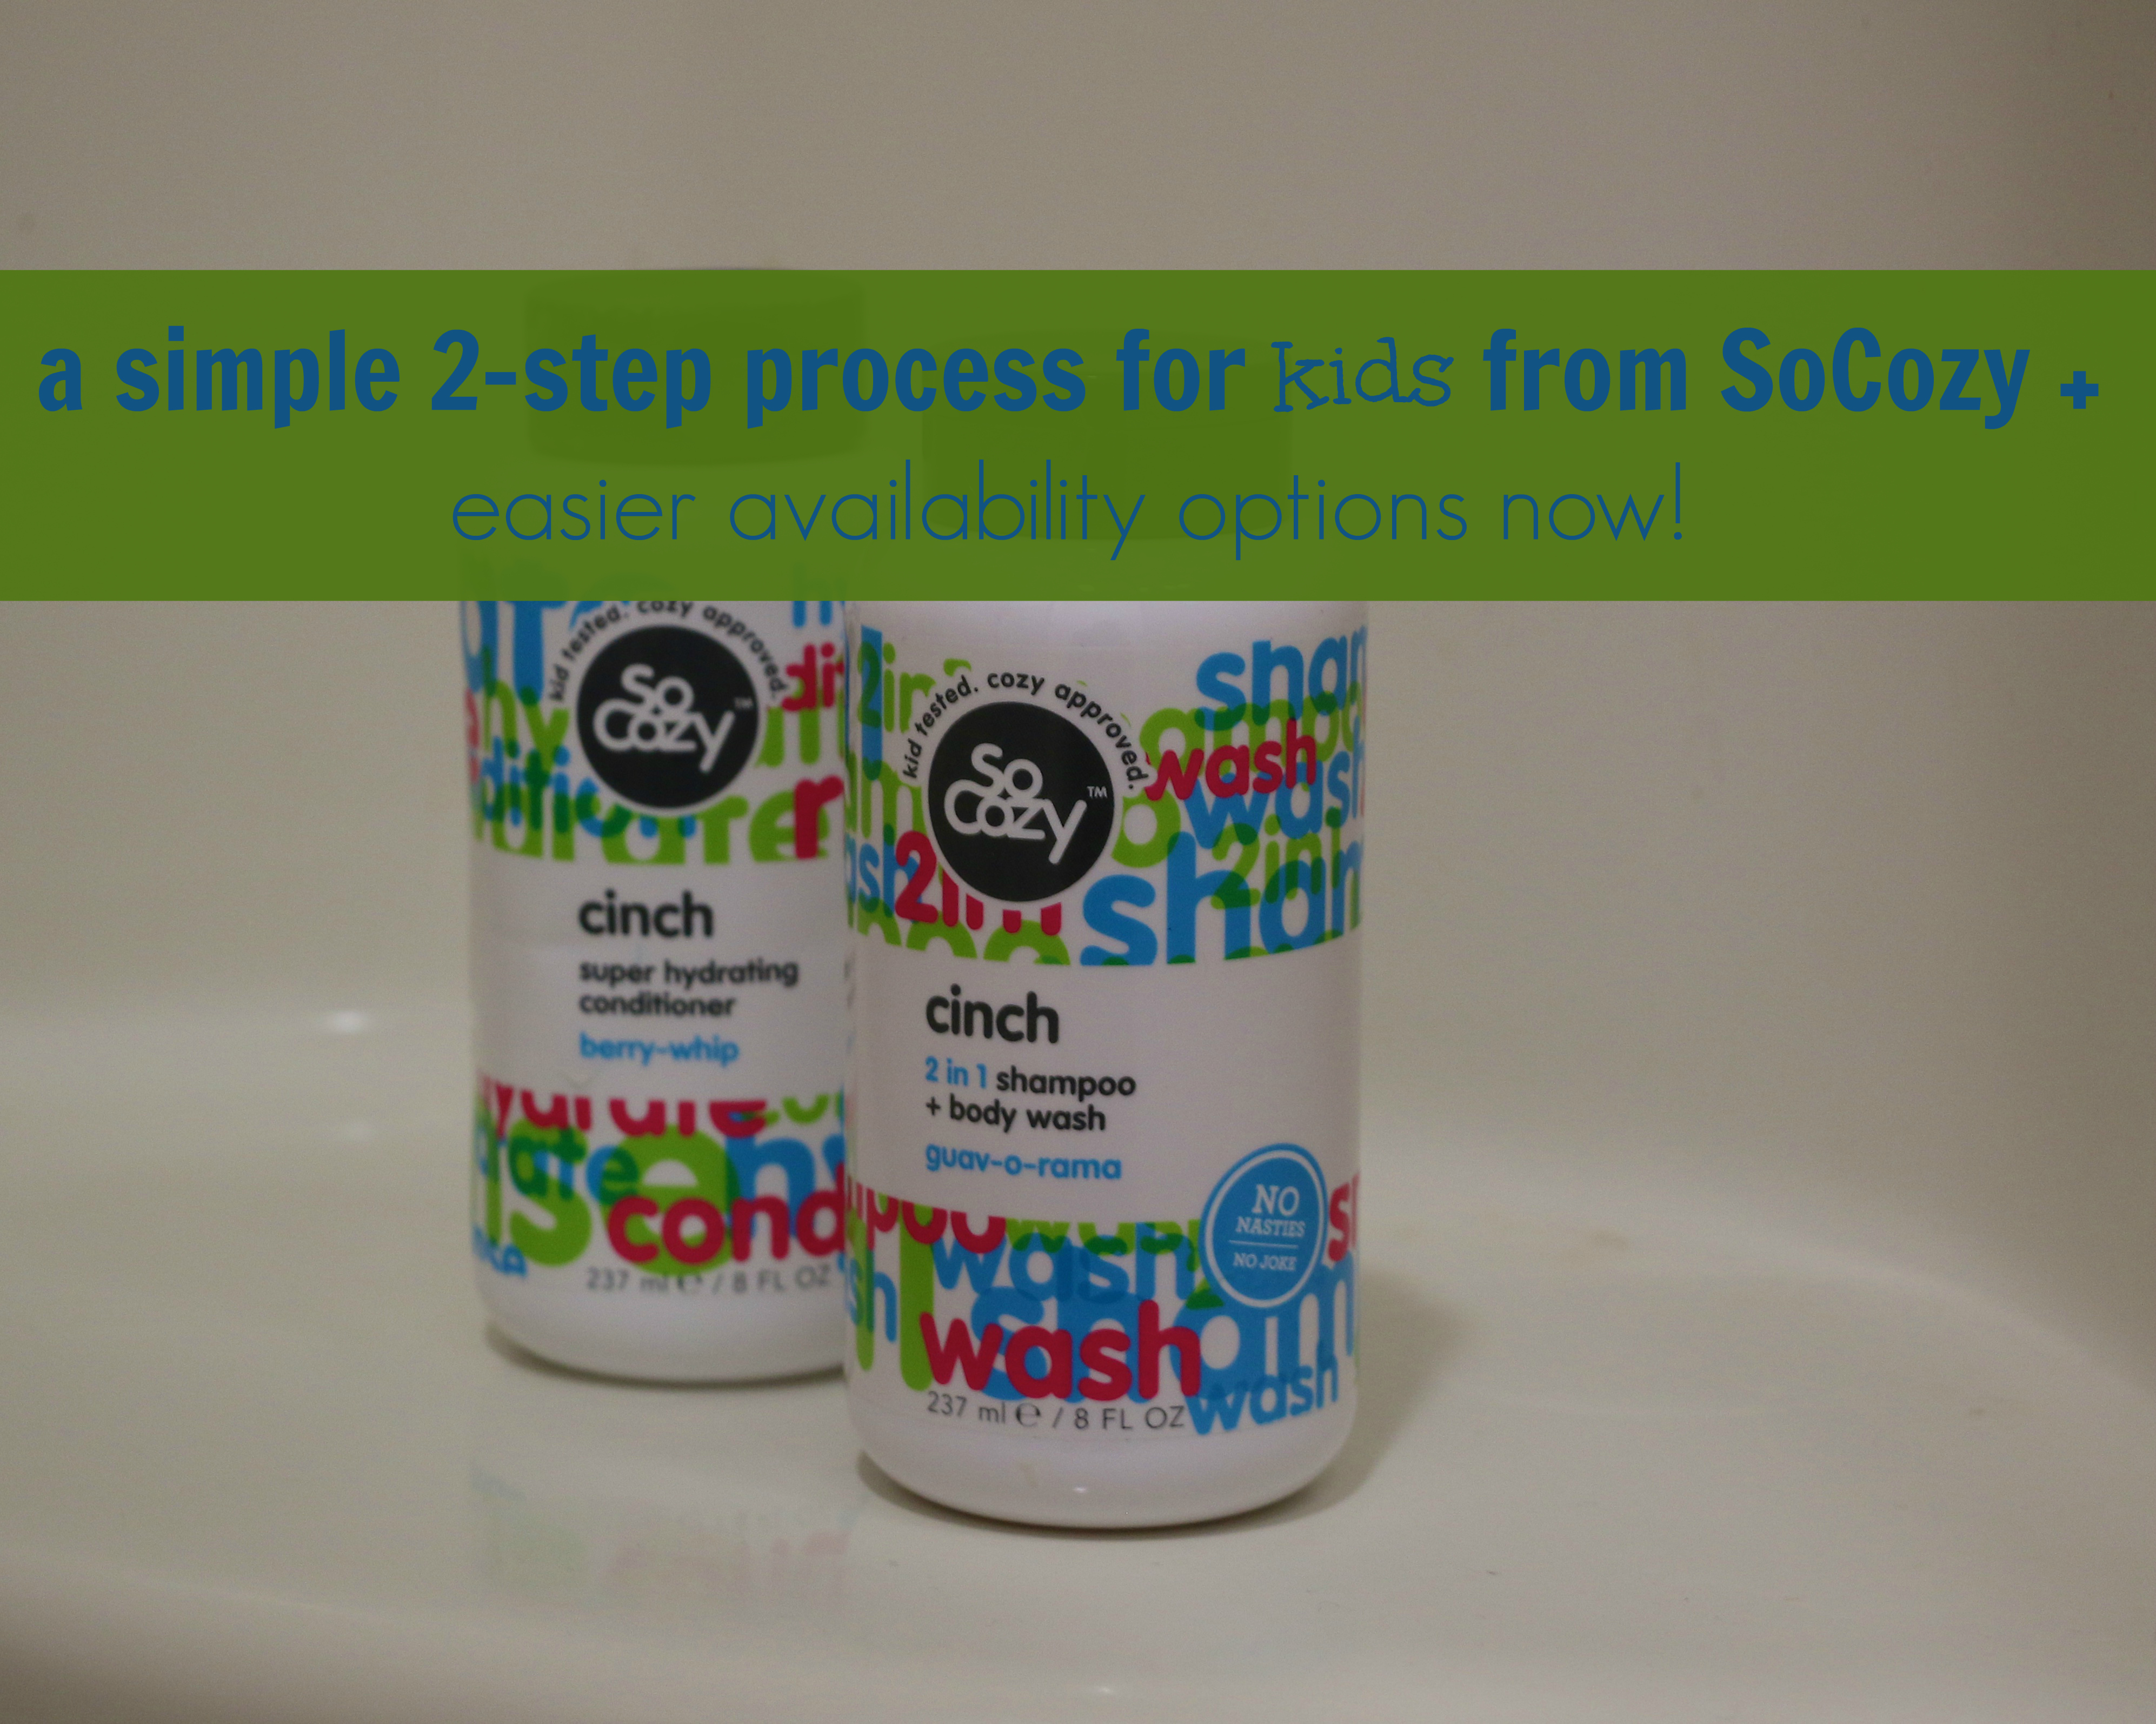 a simple 2-step process for kids from socozy